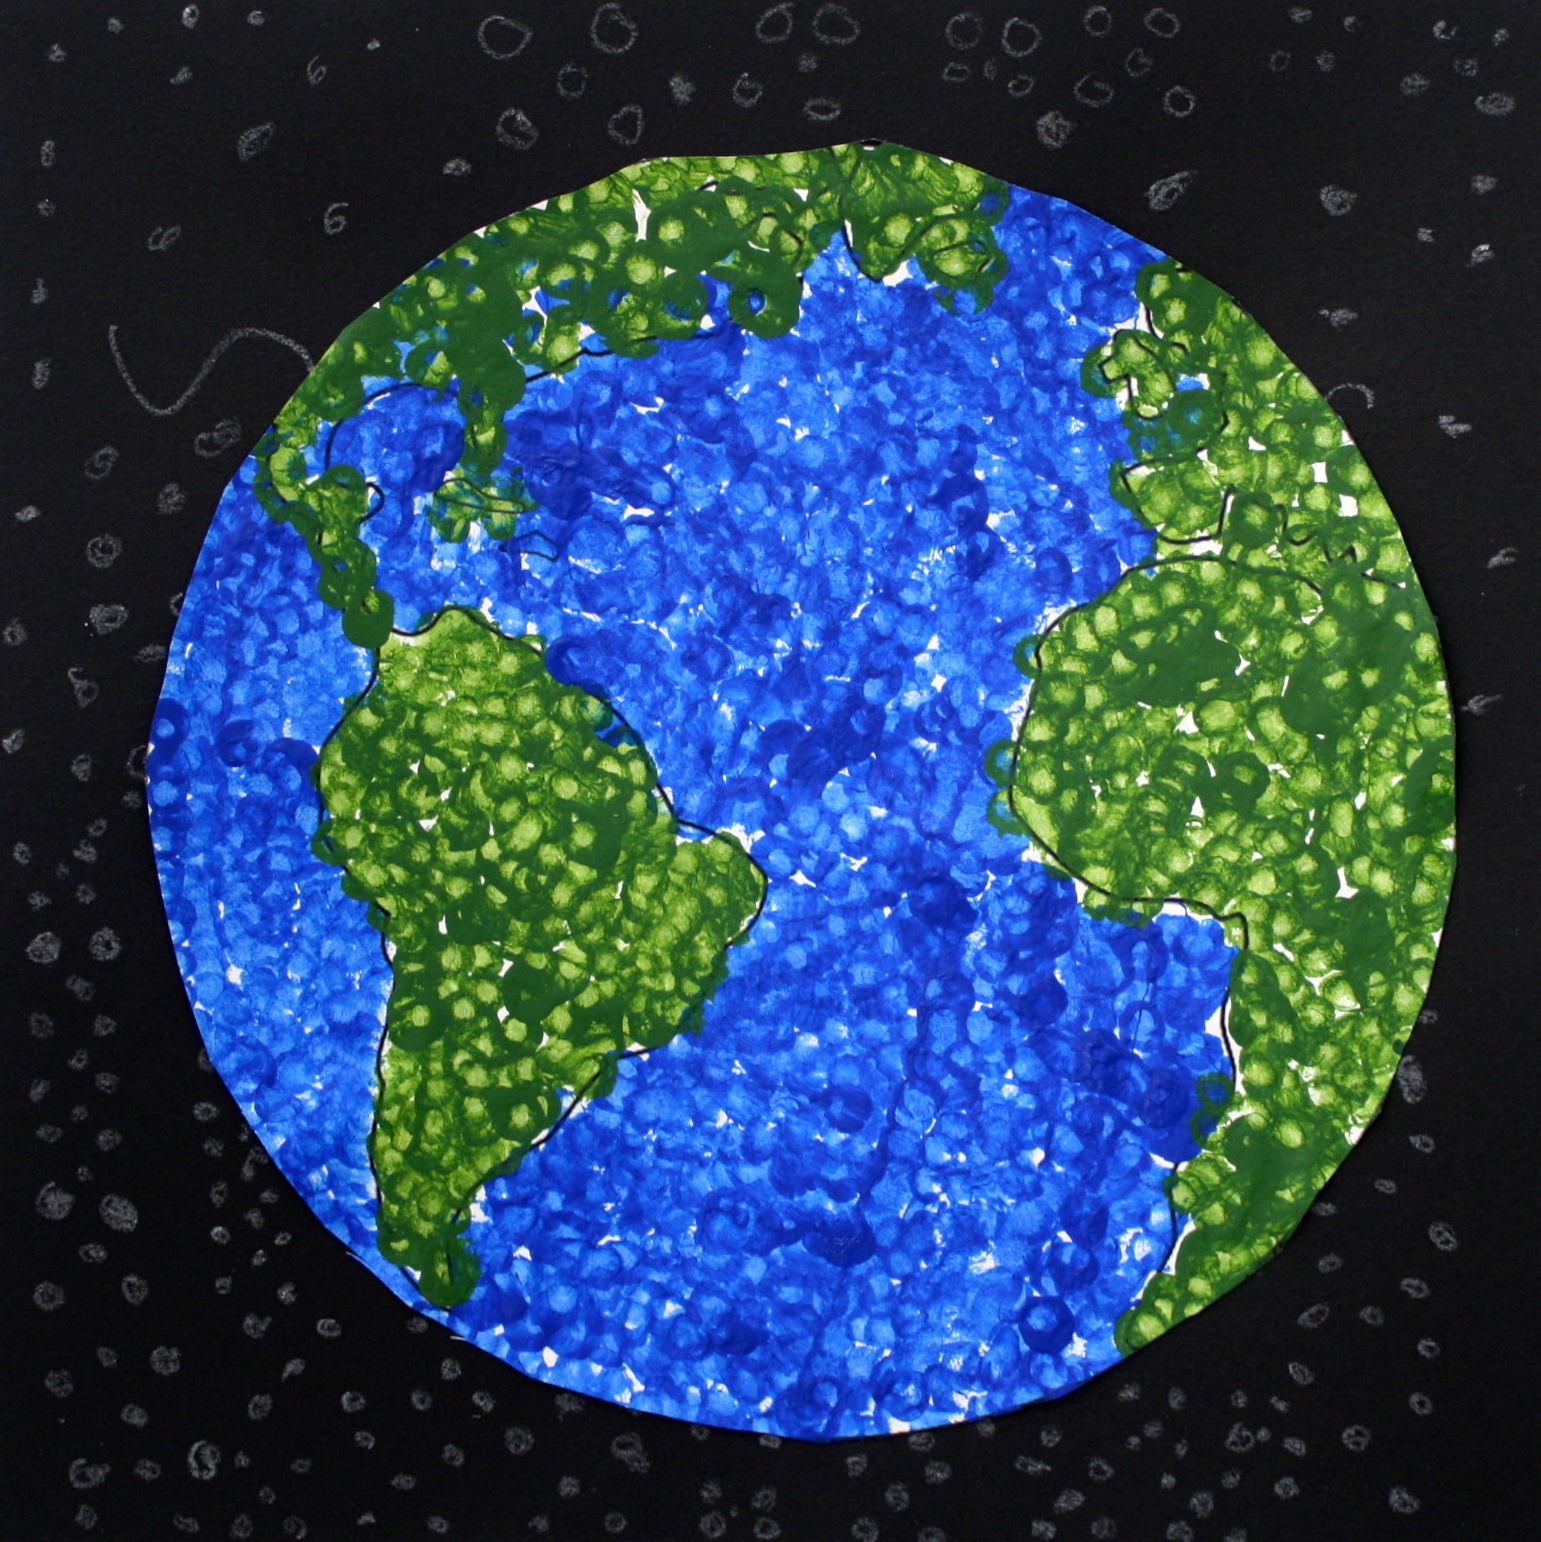 The SmARTteacher Resource: Earth Day Dot Painting